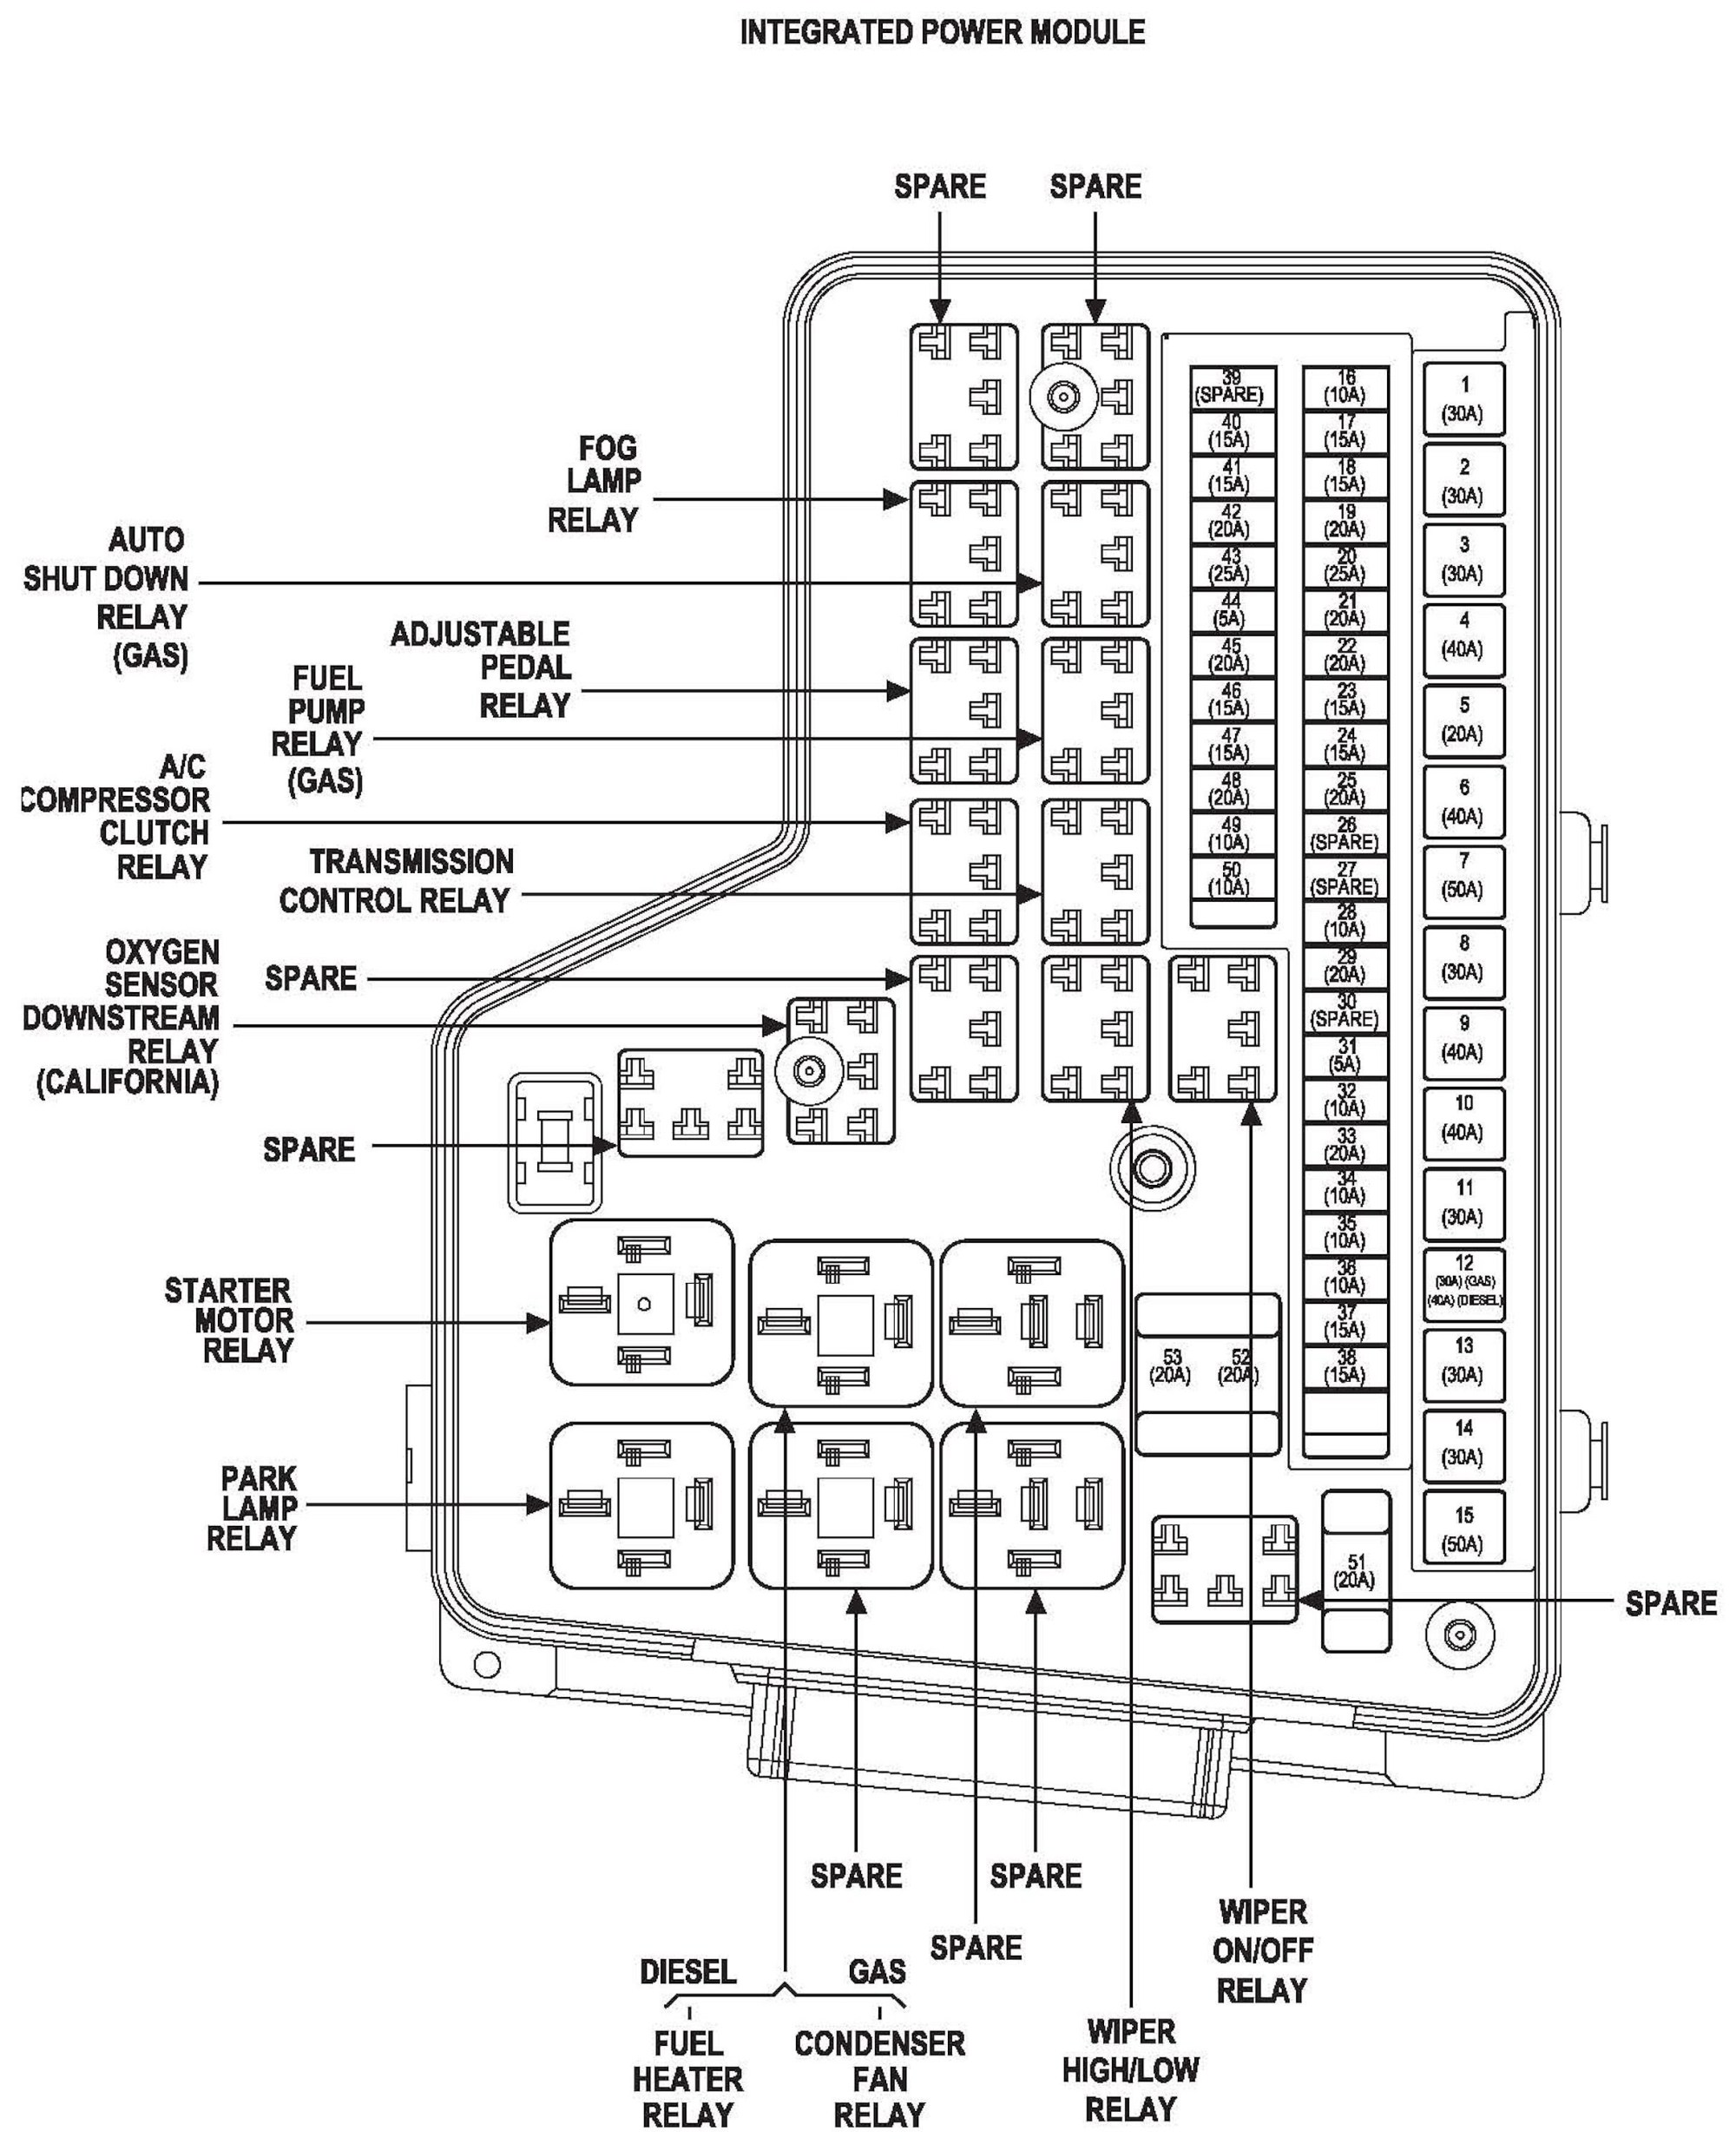 hight resolution of 2004 dodge ram fuse box diagram and relays wiring diagram blogs 2003 dodge intrepid fuse box diagram 2003 dodge ram 1500 underhood fuse box